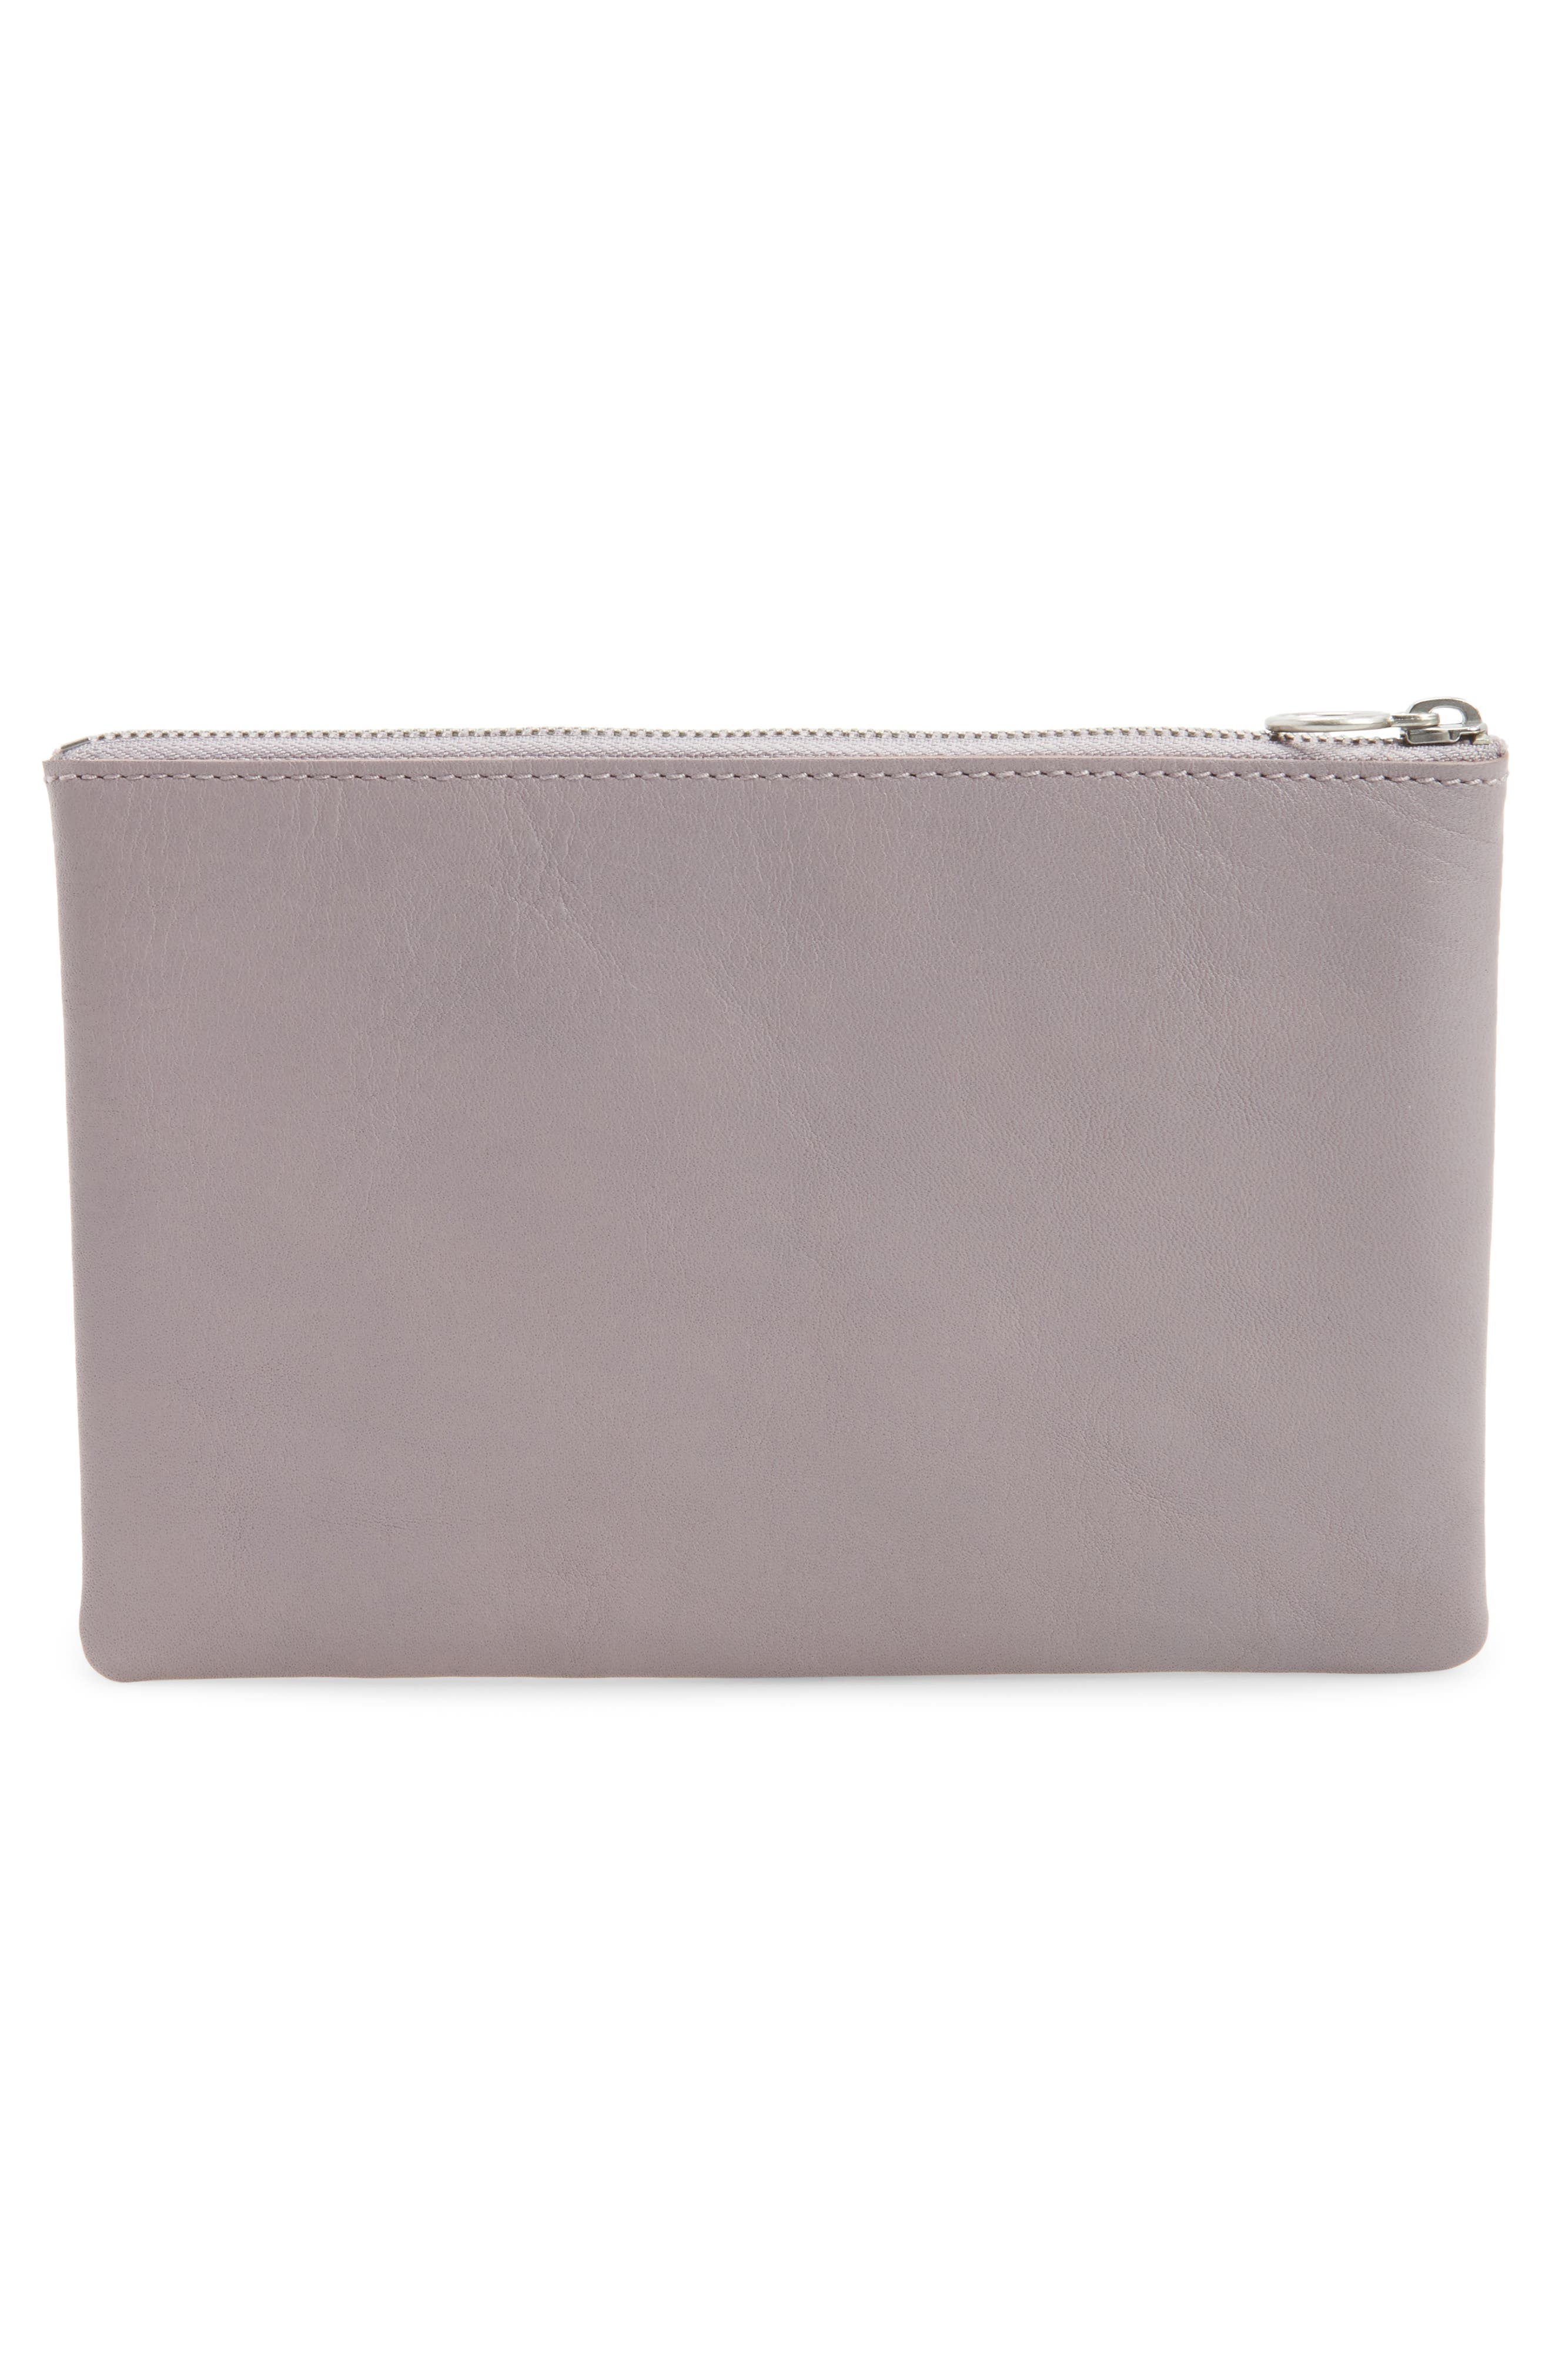 Alternate Image 3  - Madewell The Leather Pouch Clutch